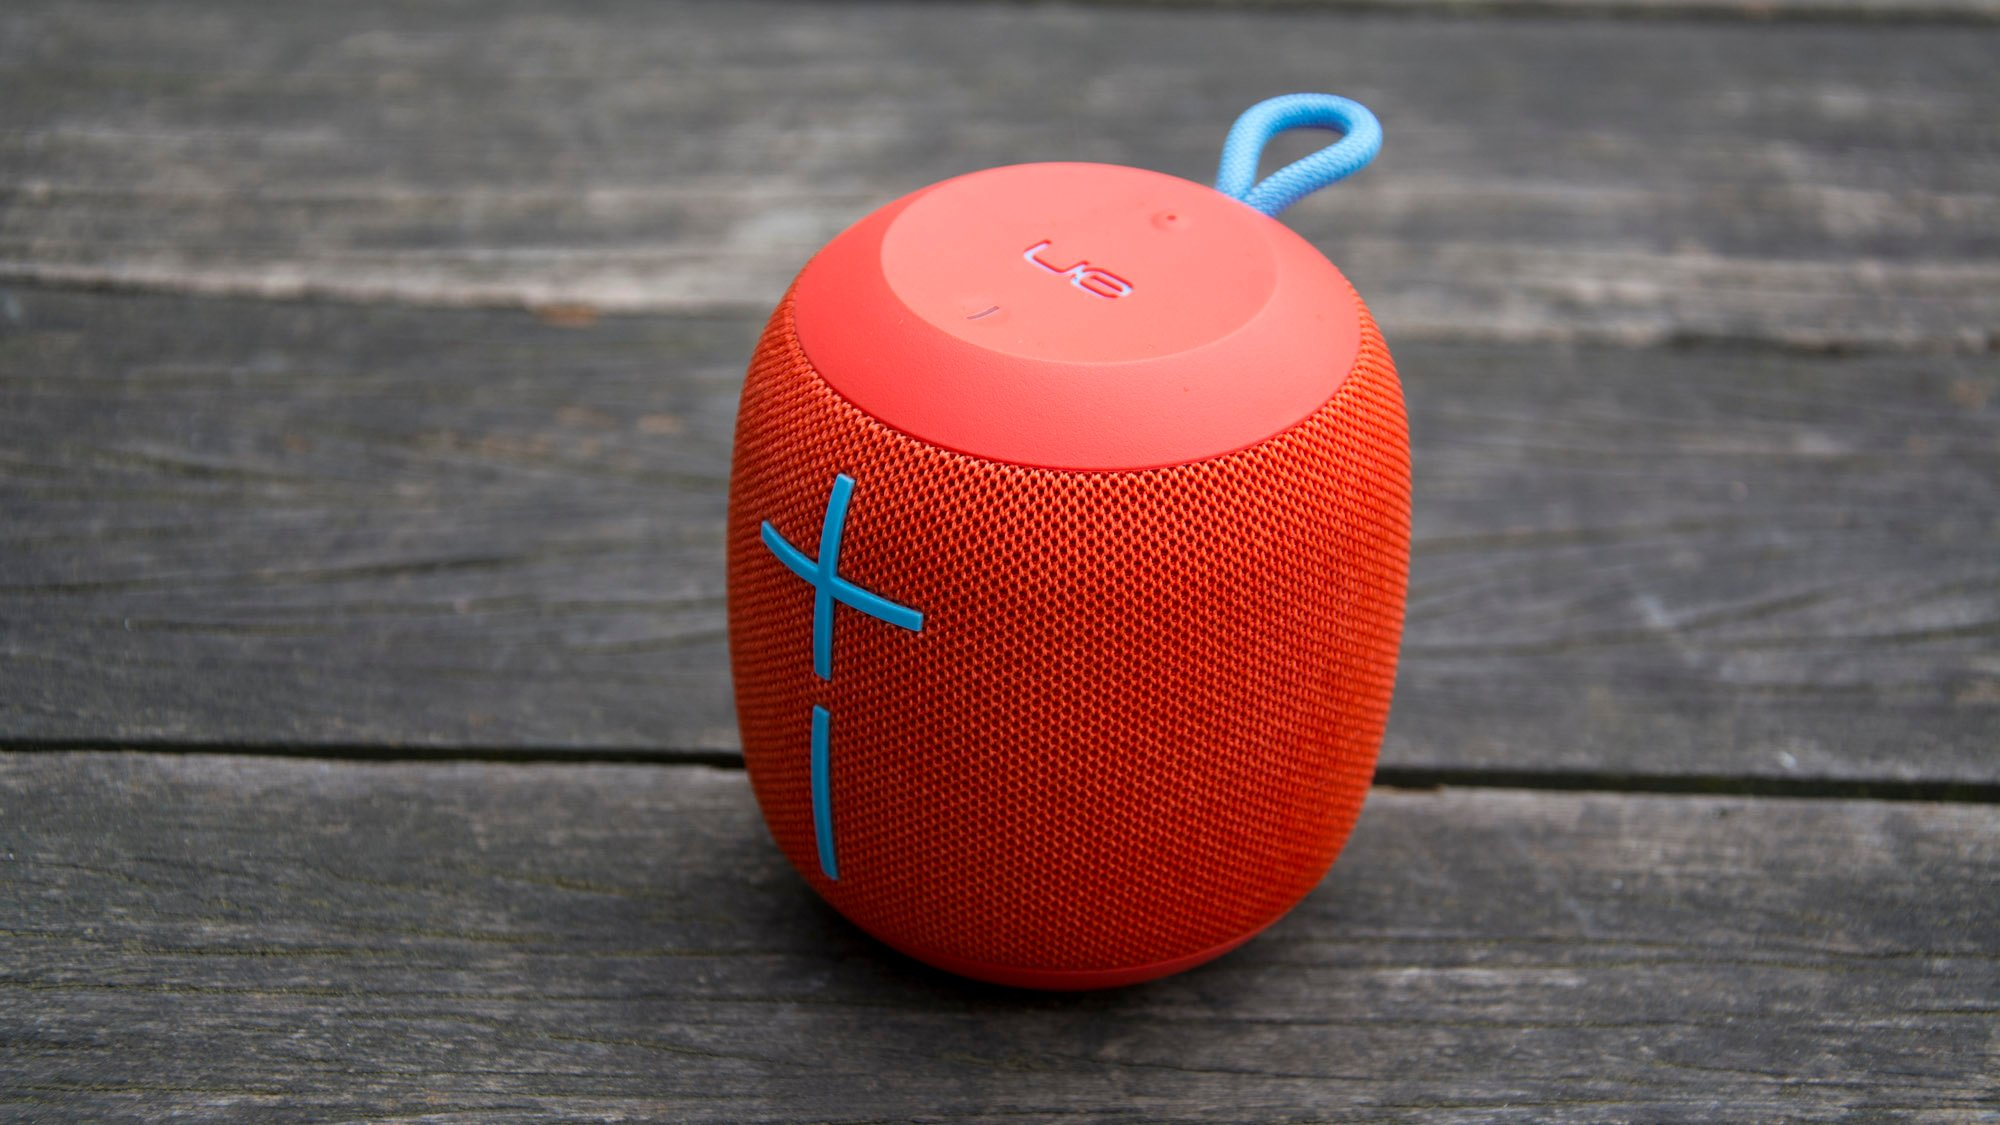 Ultimate Ears Wonderboom review: Portable, stylish and pool